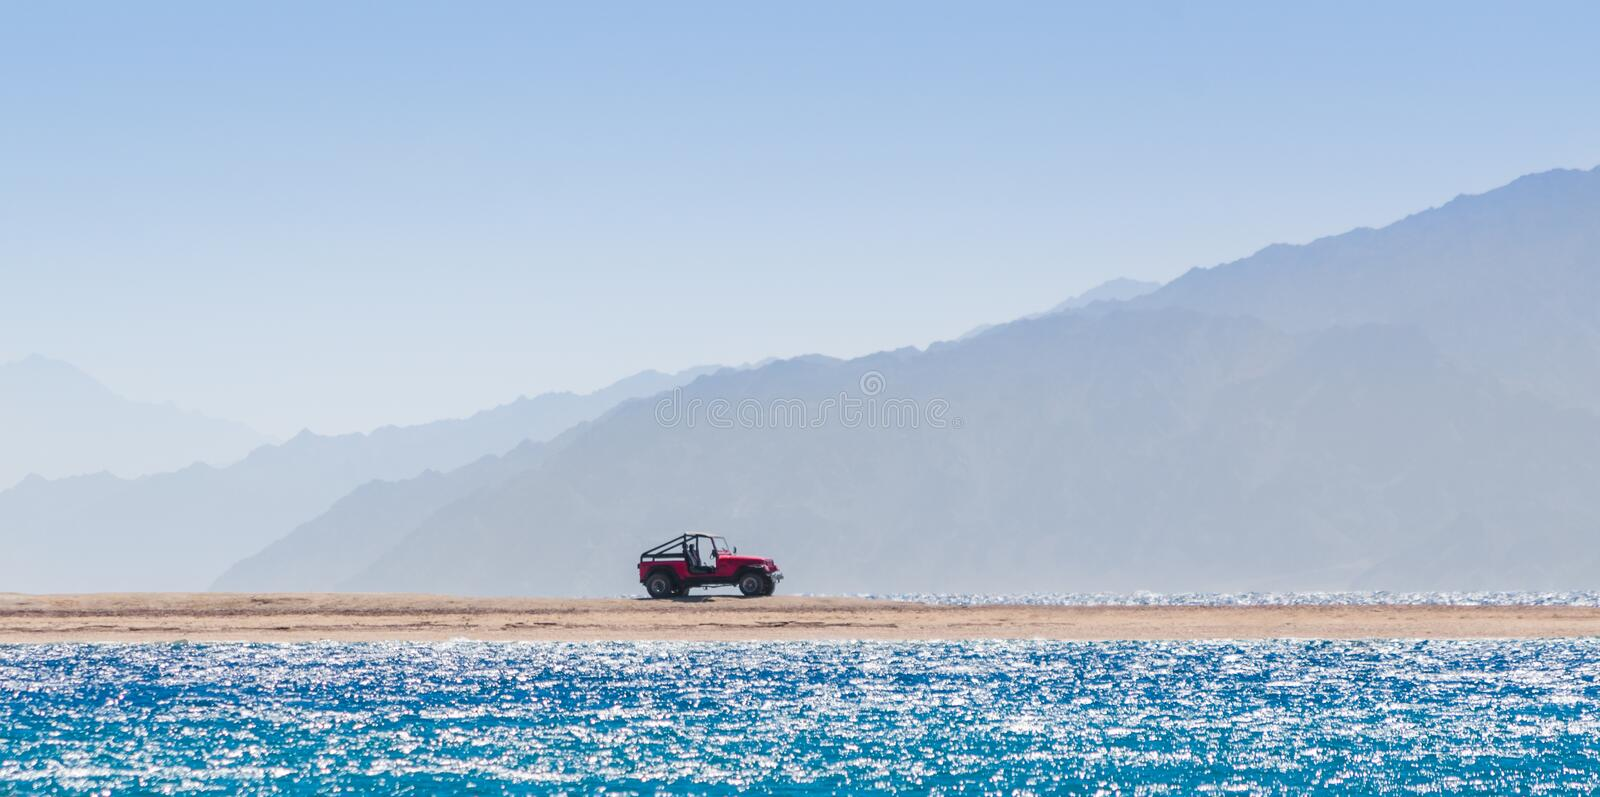 Offroad car on an island in the Red Sea against the backdrop of high cliffs in Egypt. Offroad car on an island in the Red Sea against the backdrop of the high stock photos